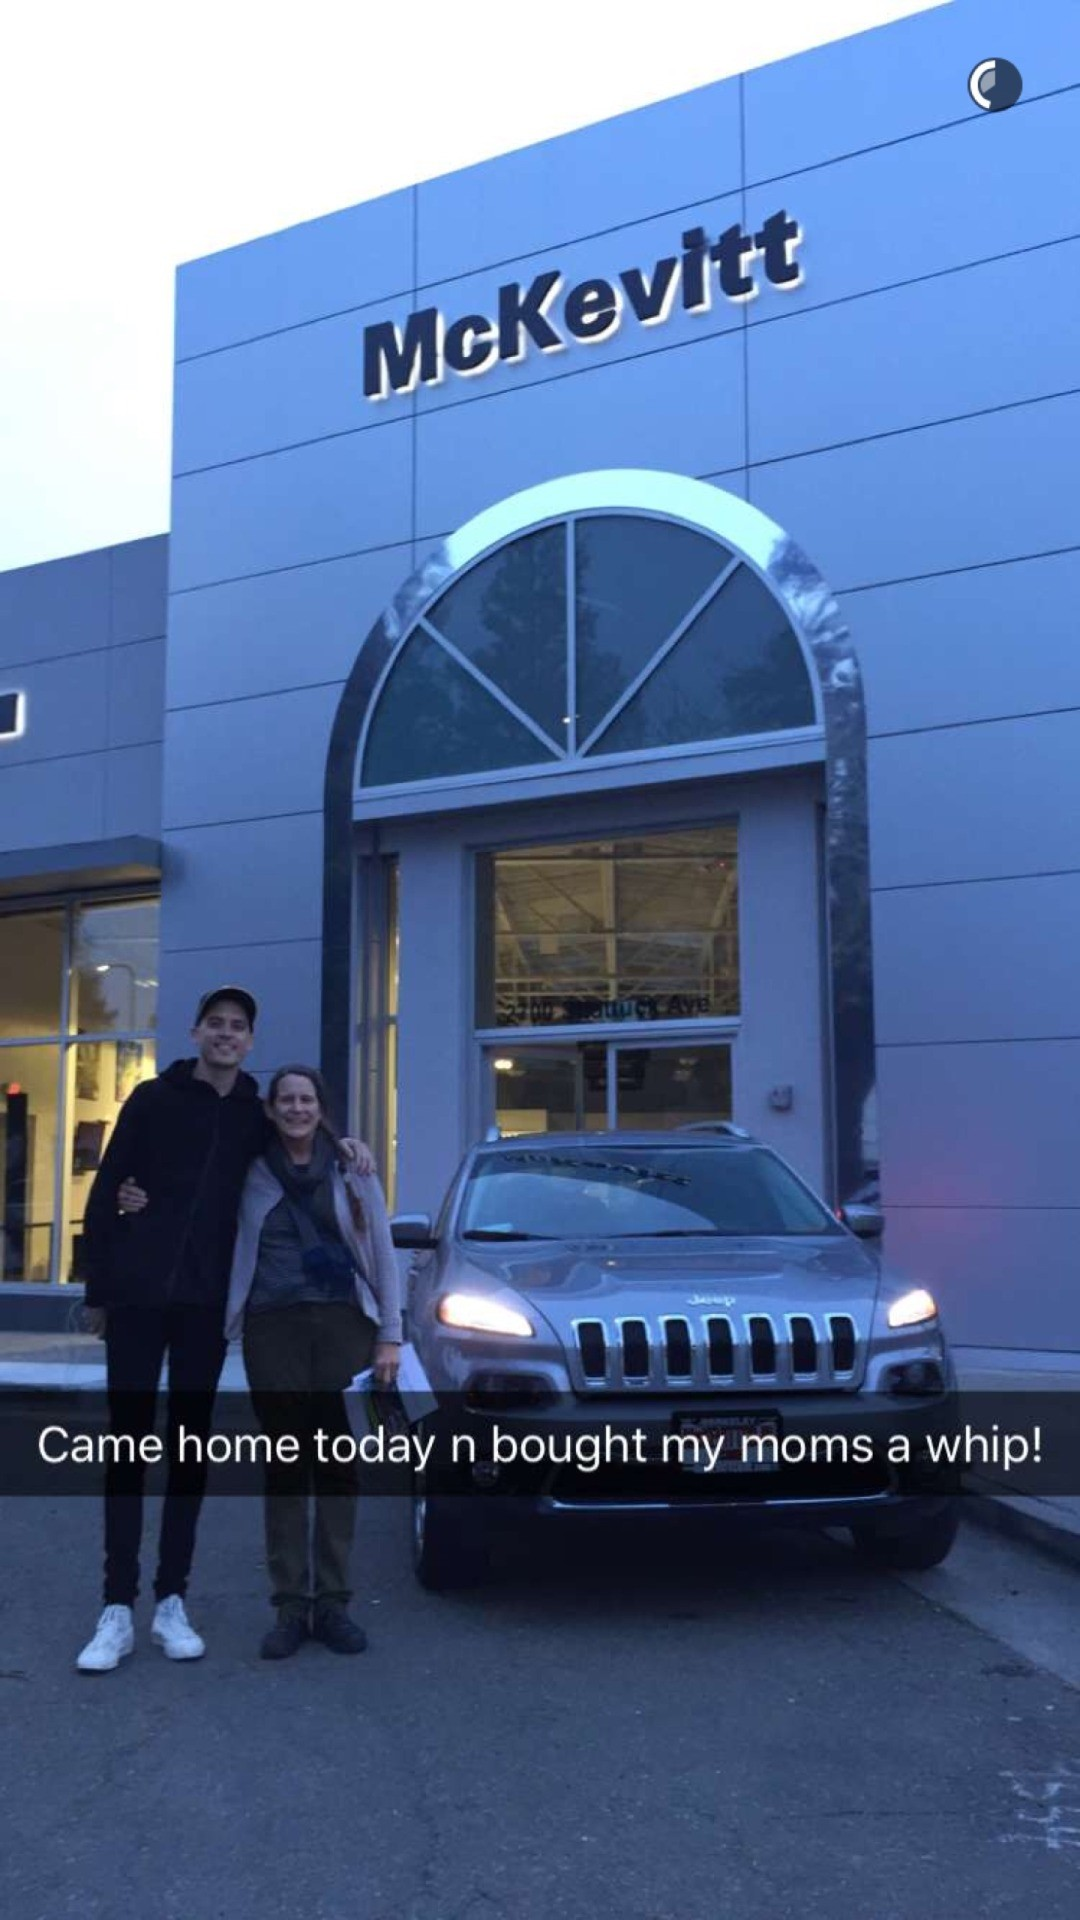 He bought his mom a car!🎉🎉🎉